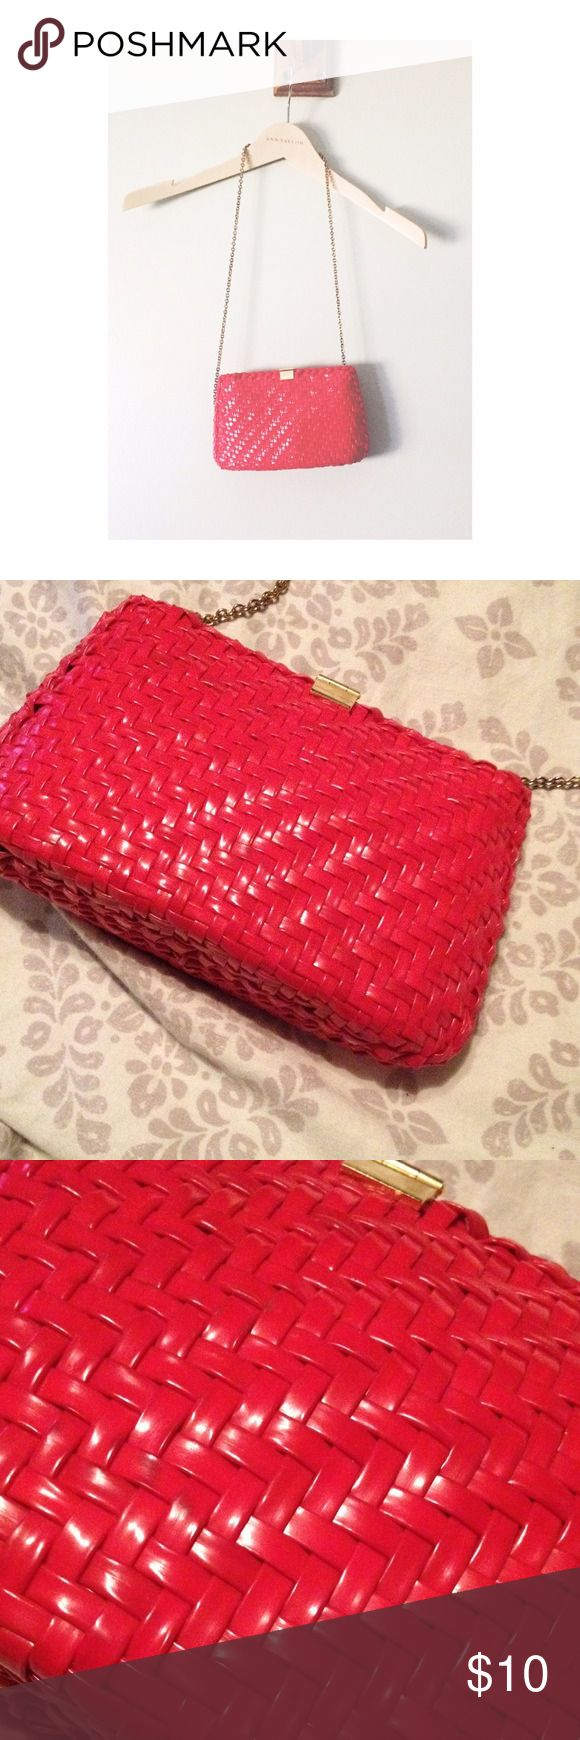 Red Clutch Purse Small red clutch purse with gold chain in a beautiful basket weave detail. New condition Bags Clutches & Wristlets